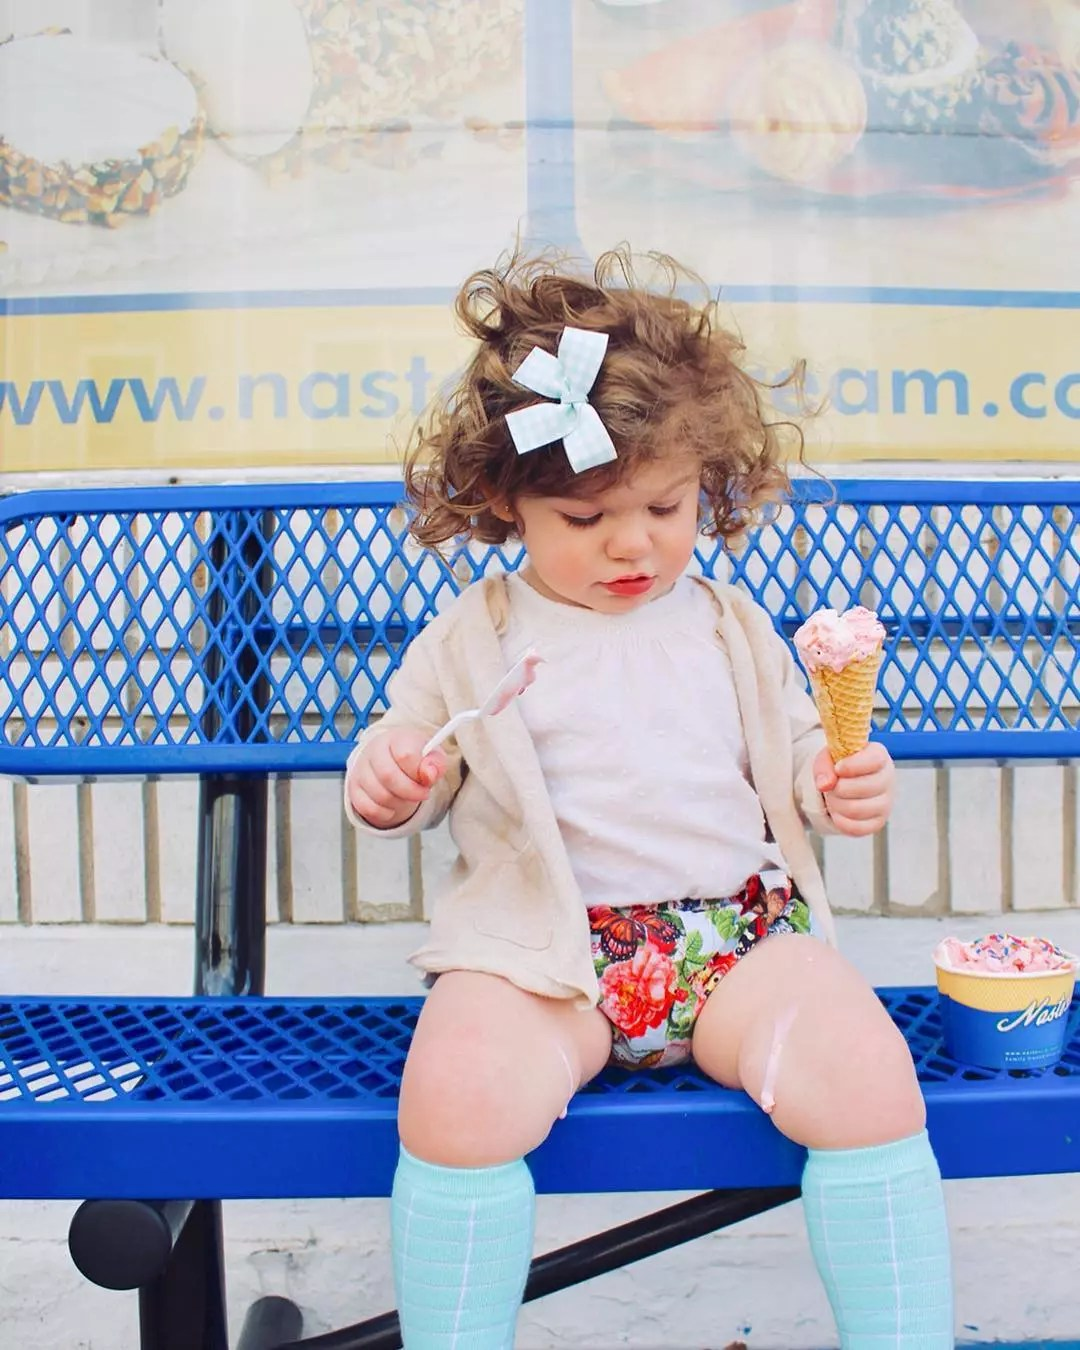 Young girl looking at ice cream dripping on her leg while holding an ice cream cone and spoon. Photo by Instagram user @kathleen_templeton